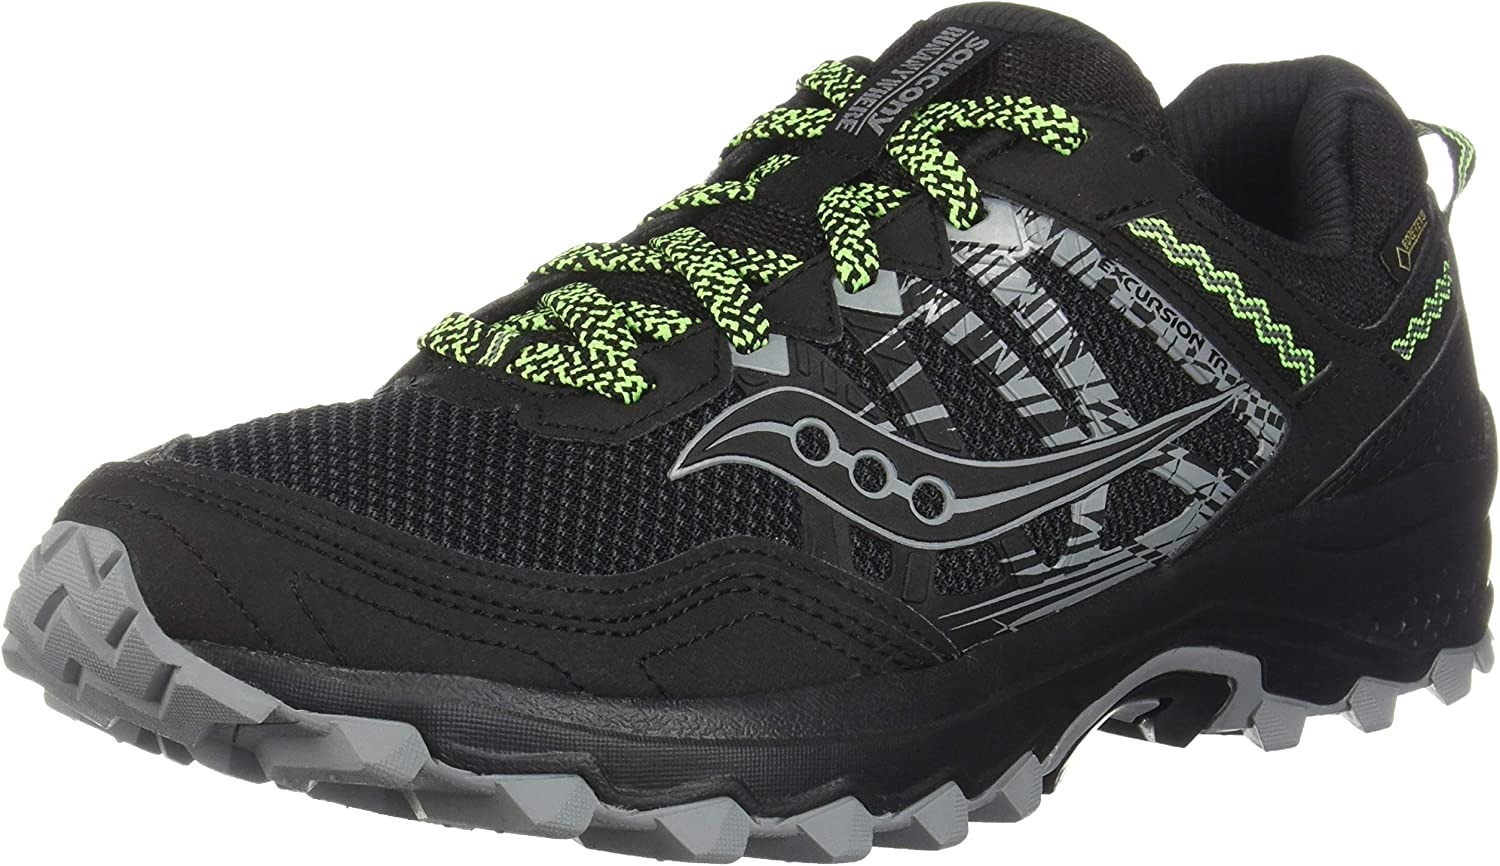 SALE!!!Saucony Mens Excursion TR12 GTX Waterproof Running